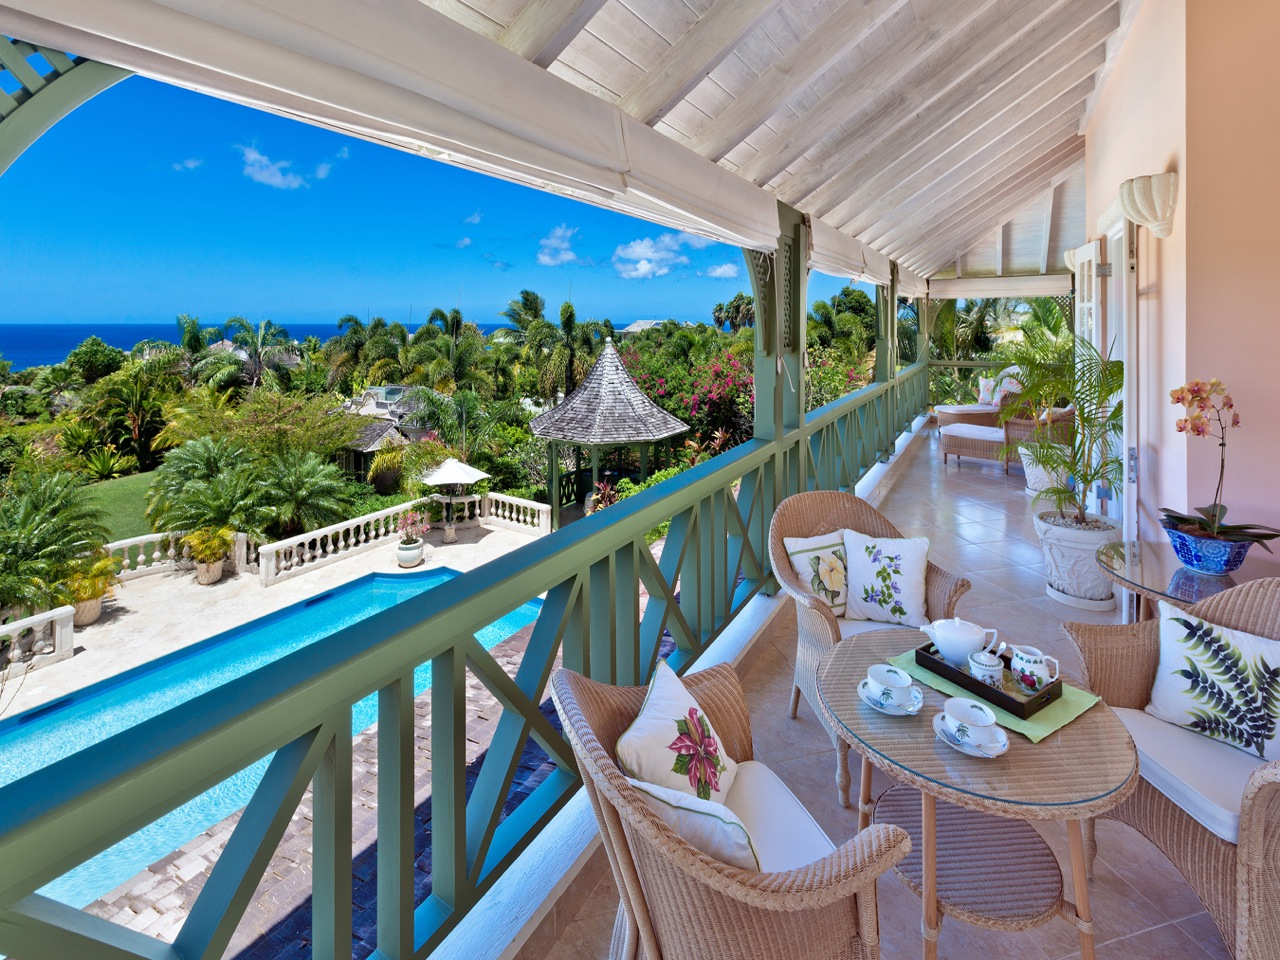 Firefly Barbados your escape